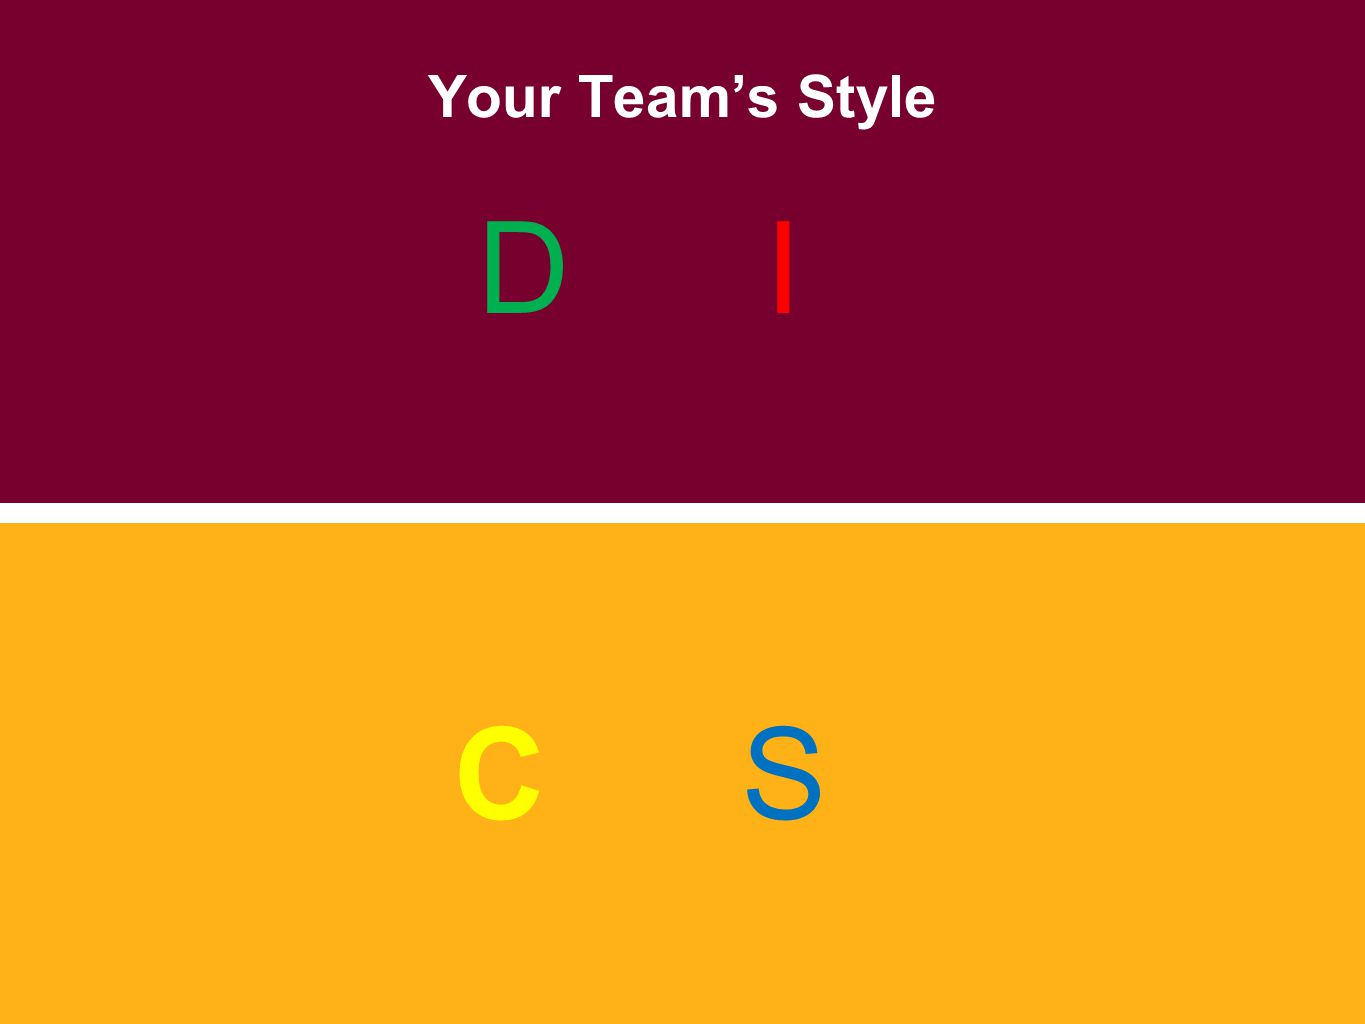 Your Team's Style D I. C S.